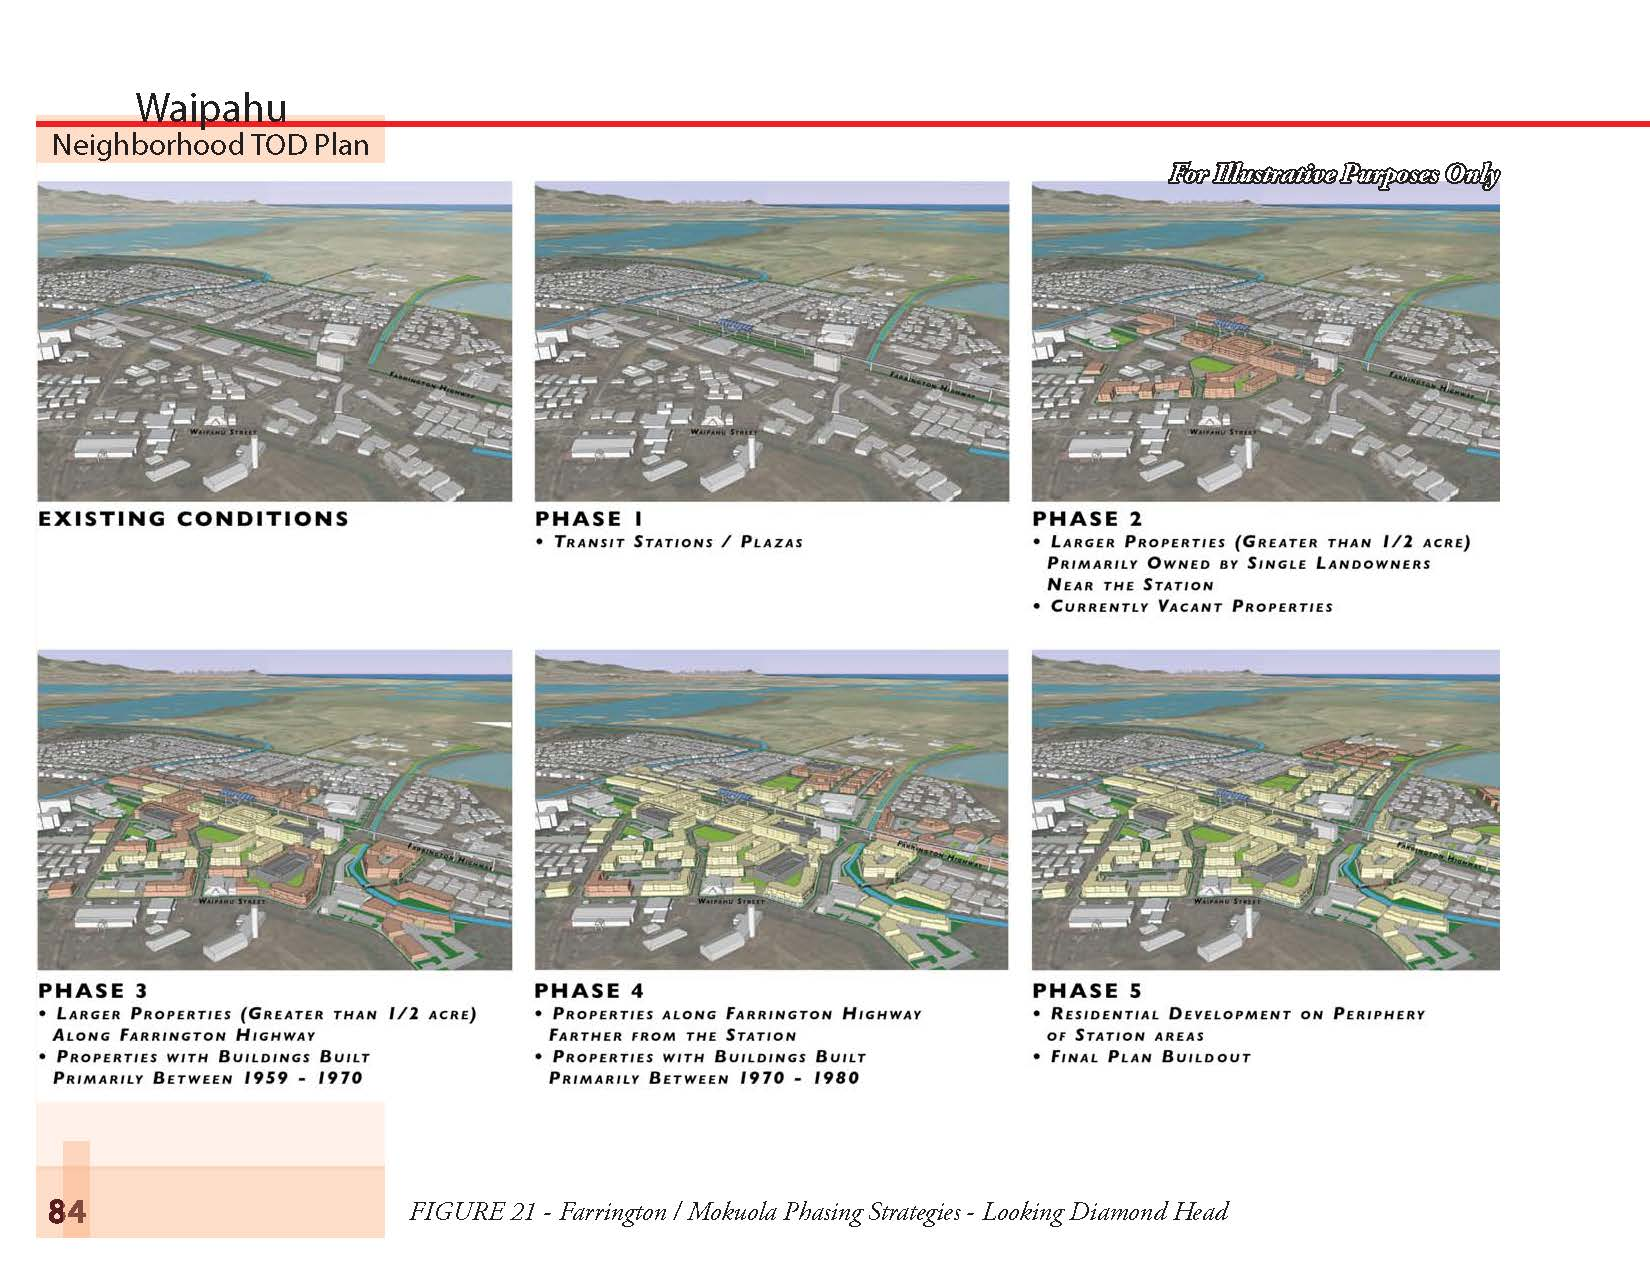 160513_Waipahu Neighborhood TOD Plan_Page_090.jpg